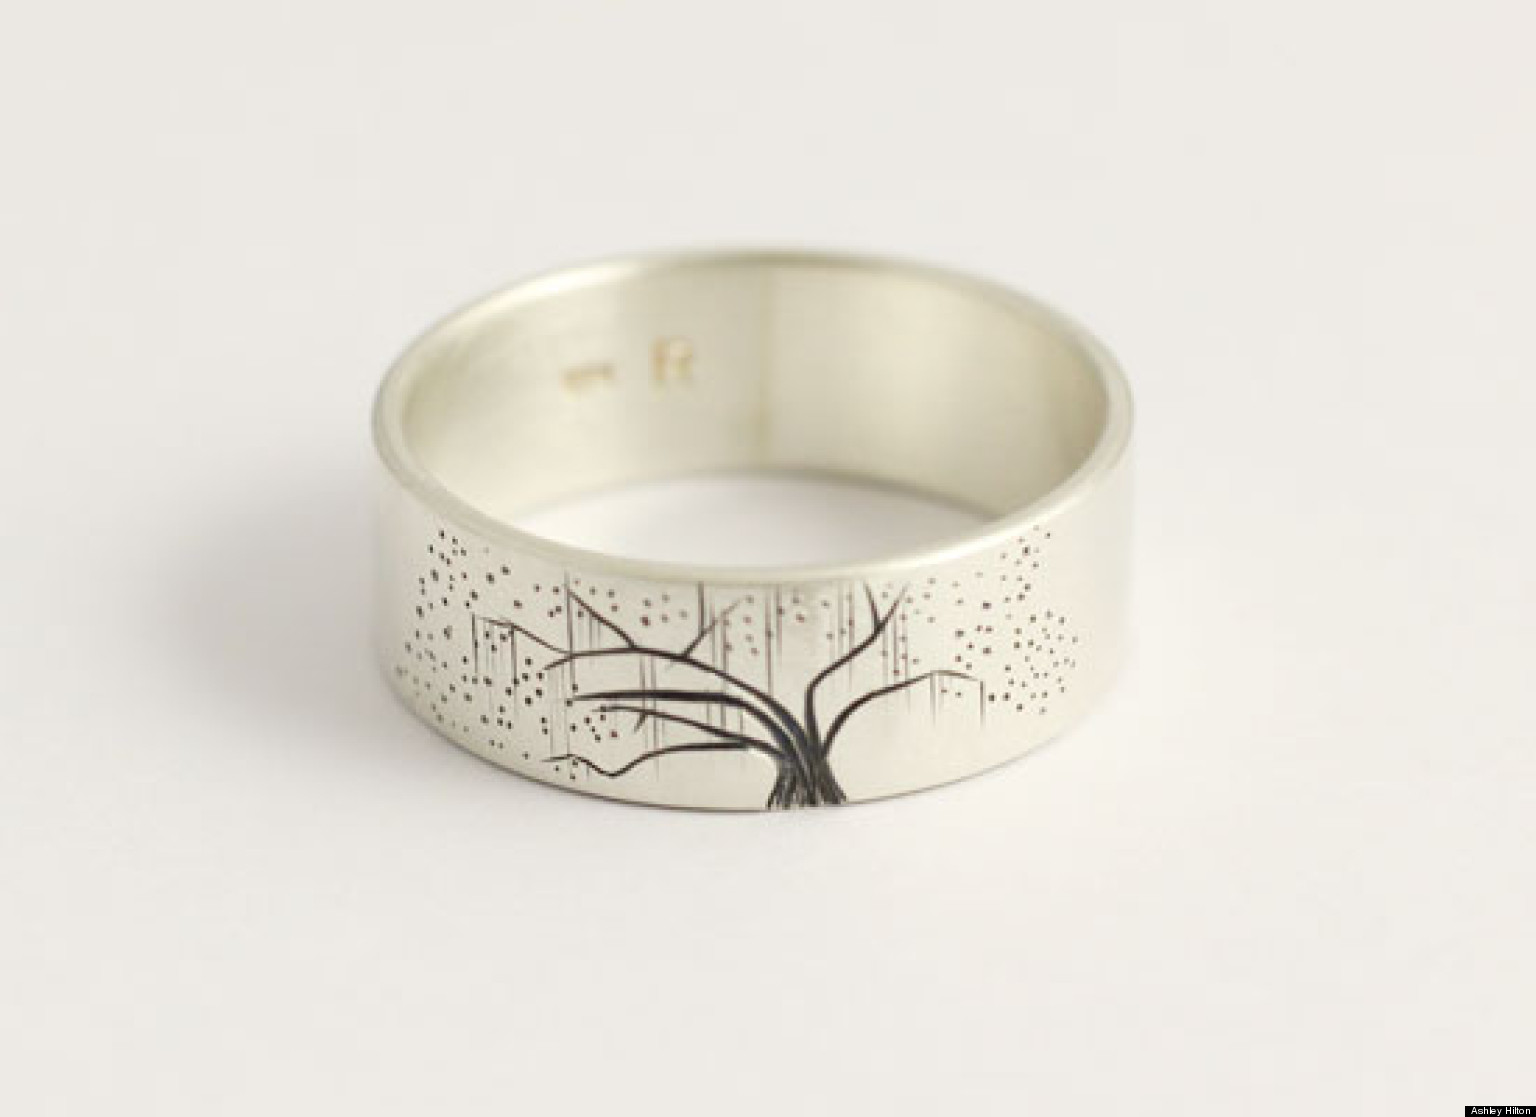 tree branch wedding ring branch wedding ring Tree branch wedding ring Wedding Trailblazers New Zealand Jewelry Company Designs Personalized Wedding Bands Photos